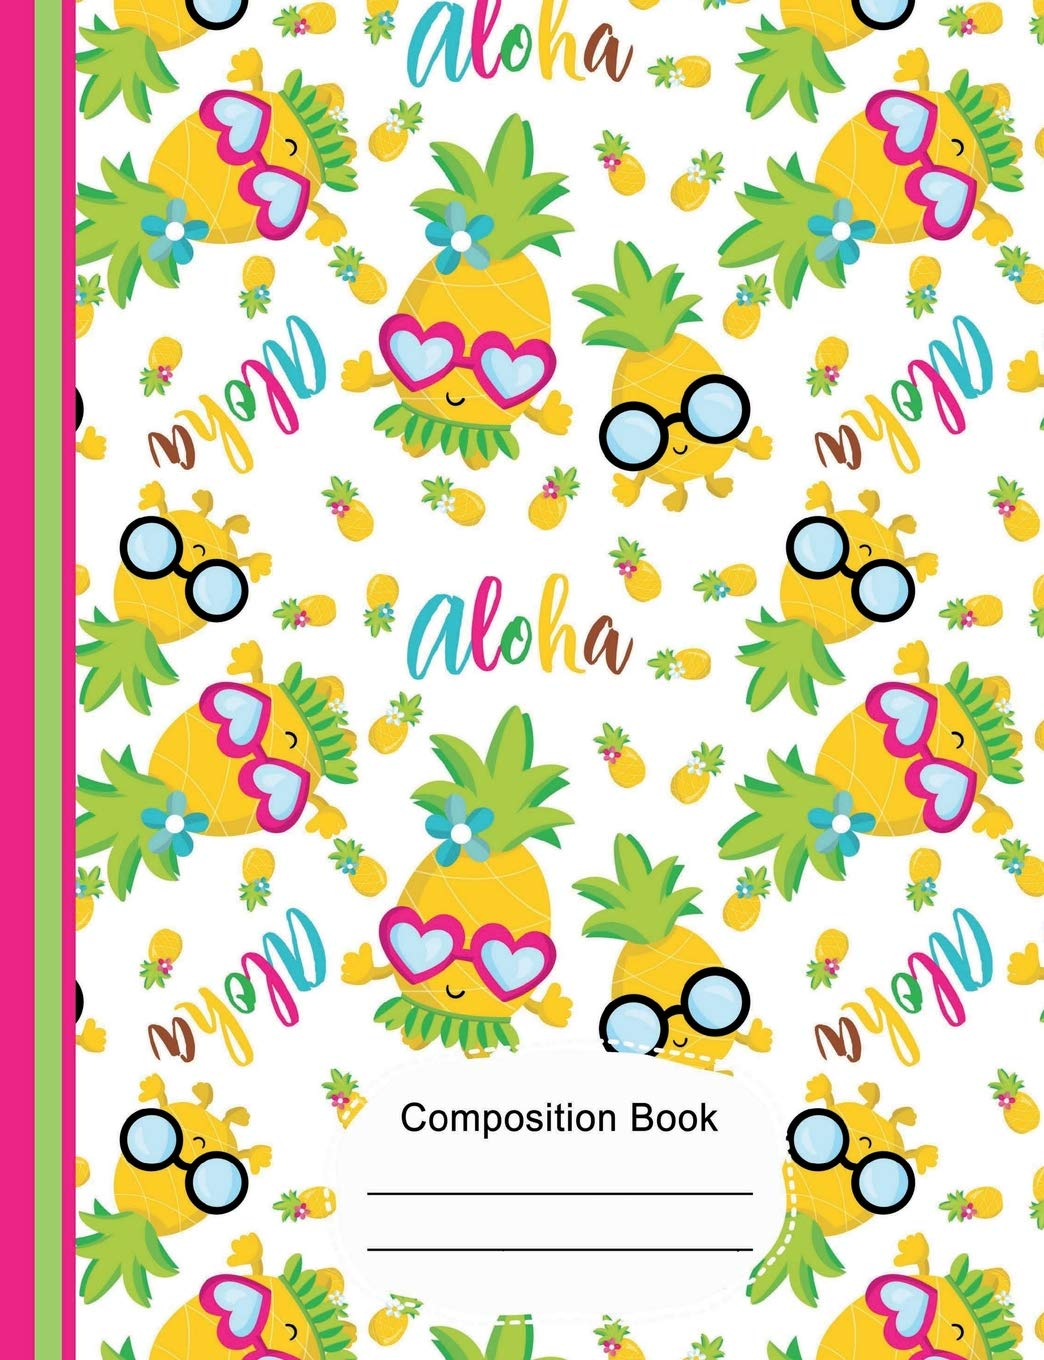 Download Tropical Aloha Cute Pineapple Composition Notebook 5x5 Quad Ruled Paper: 130 Graph Pages 7.44 x 9.69 Book, Graph Paper Journal, School Math Teachers, Students Subject Diagrams PDF